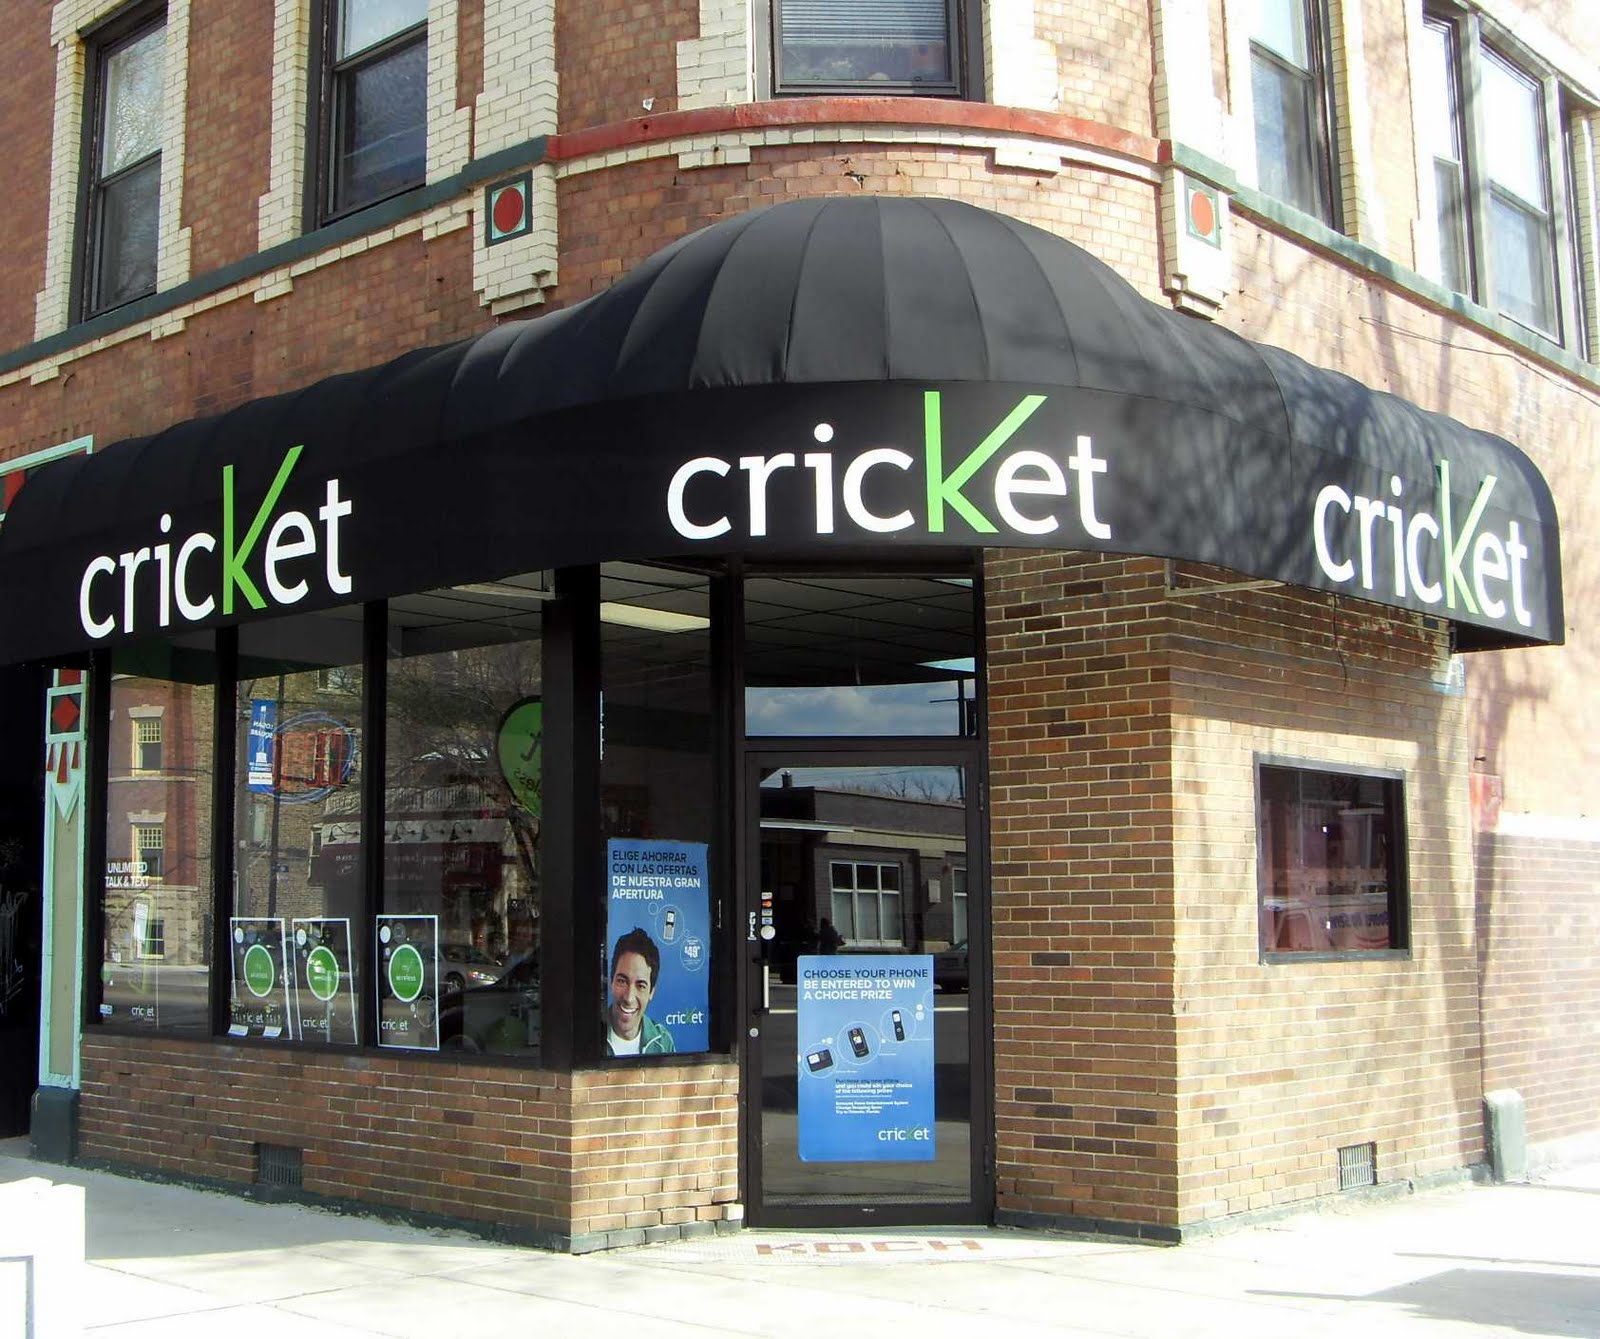 Cricket wireless customer service - Cricket Wireless Wants T Mo And Metropcs Customers To Switch Offering 100 To Do So Tmonews